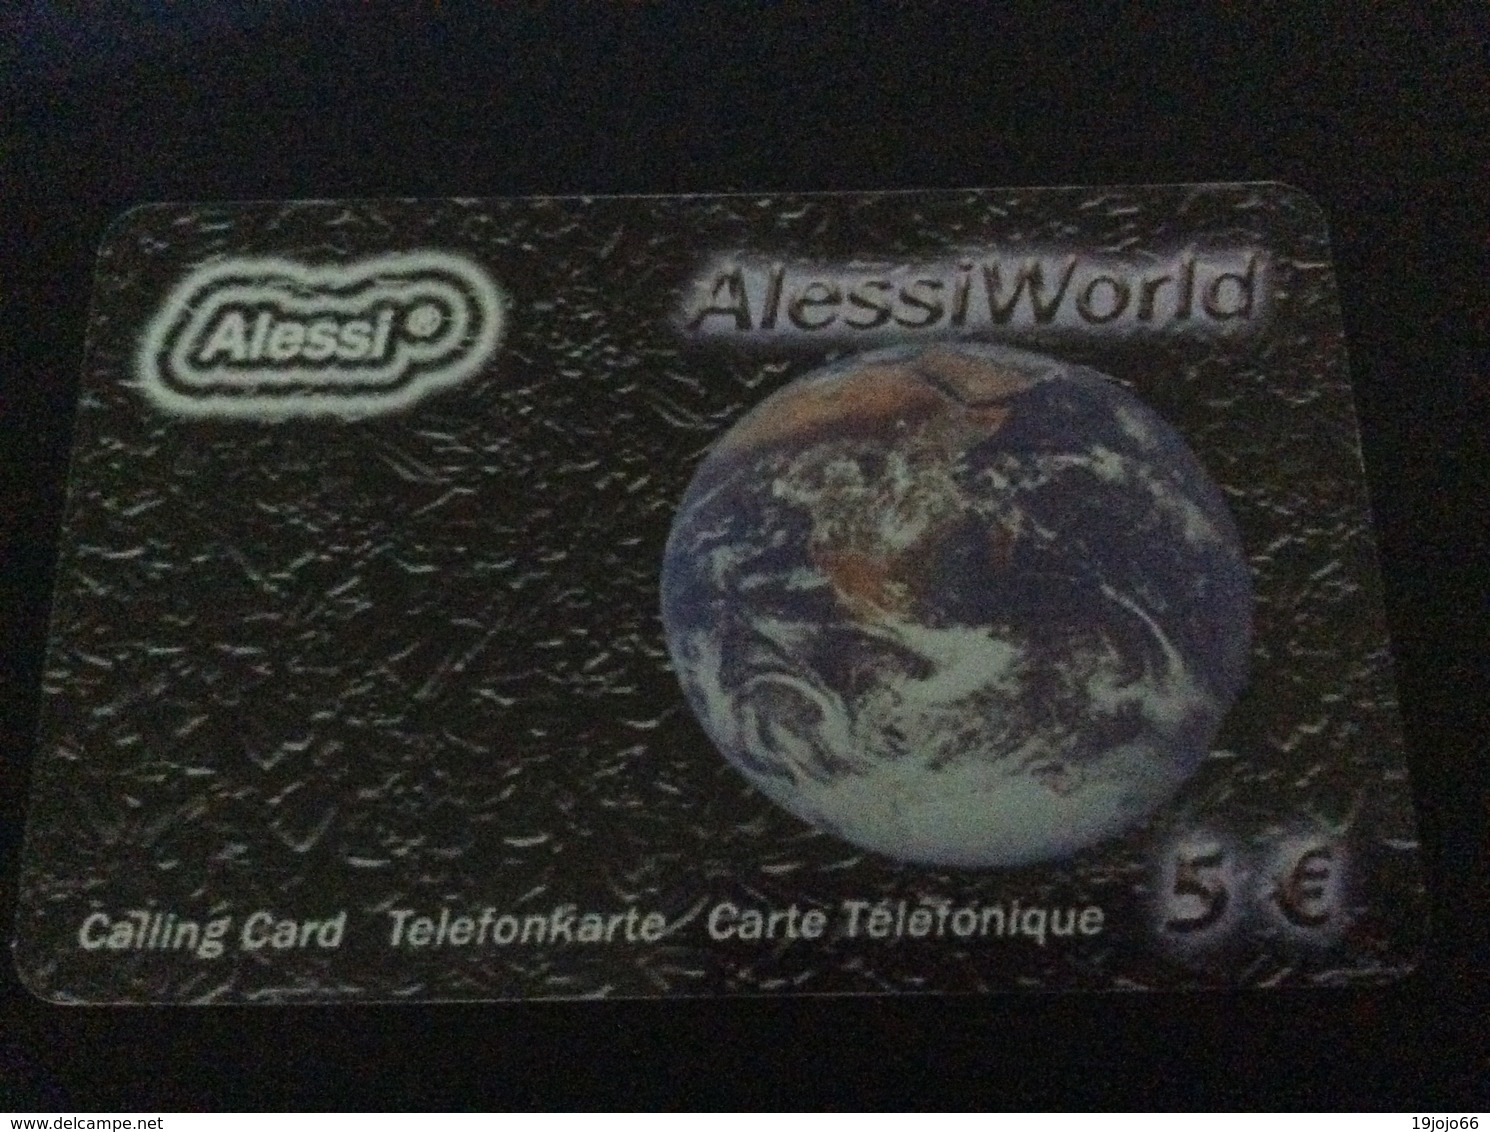 5 € Alessi World - Earth  .    - Little Printed  -   Used Condition - [2] Prepaid